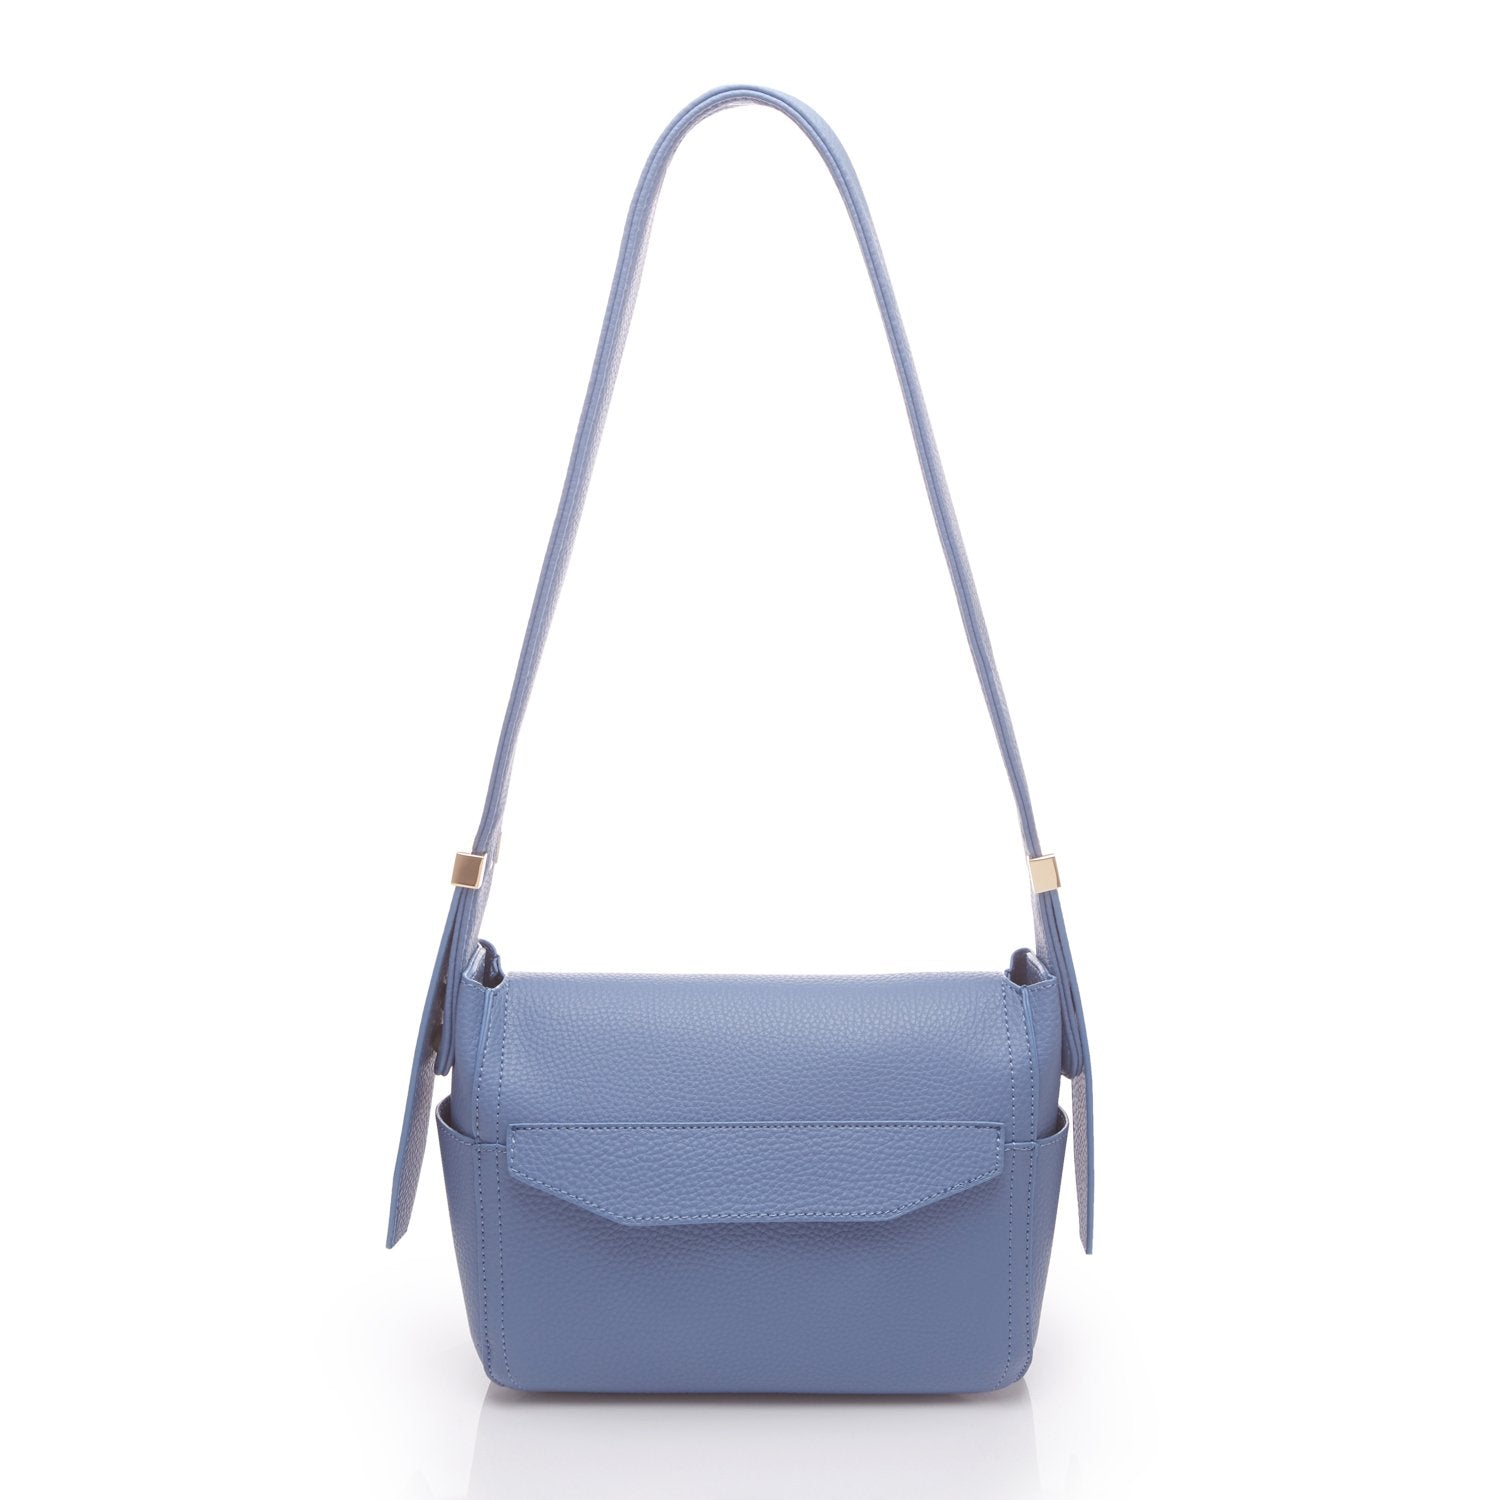 RIBAG MINI - POWDER BLUE